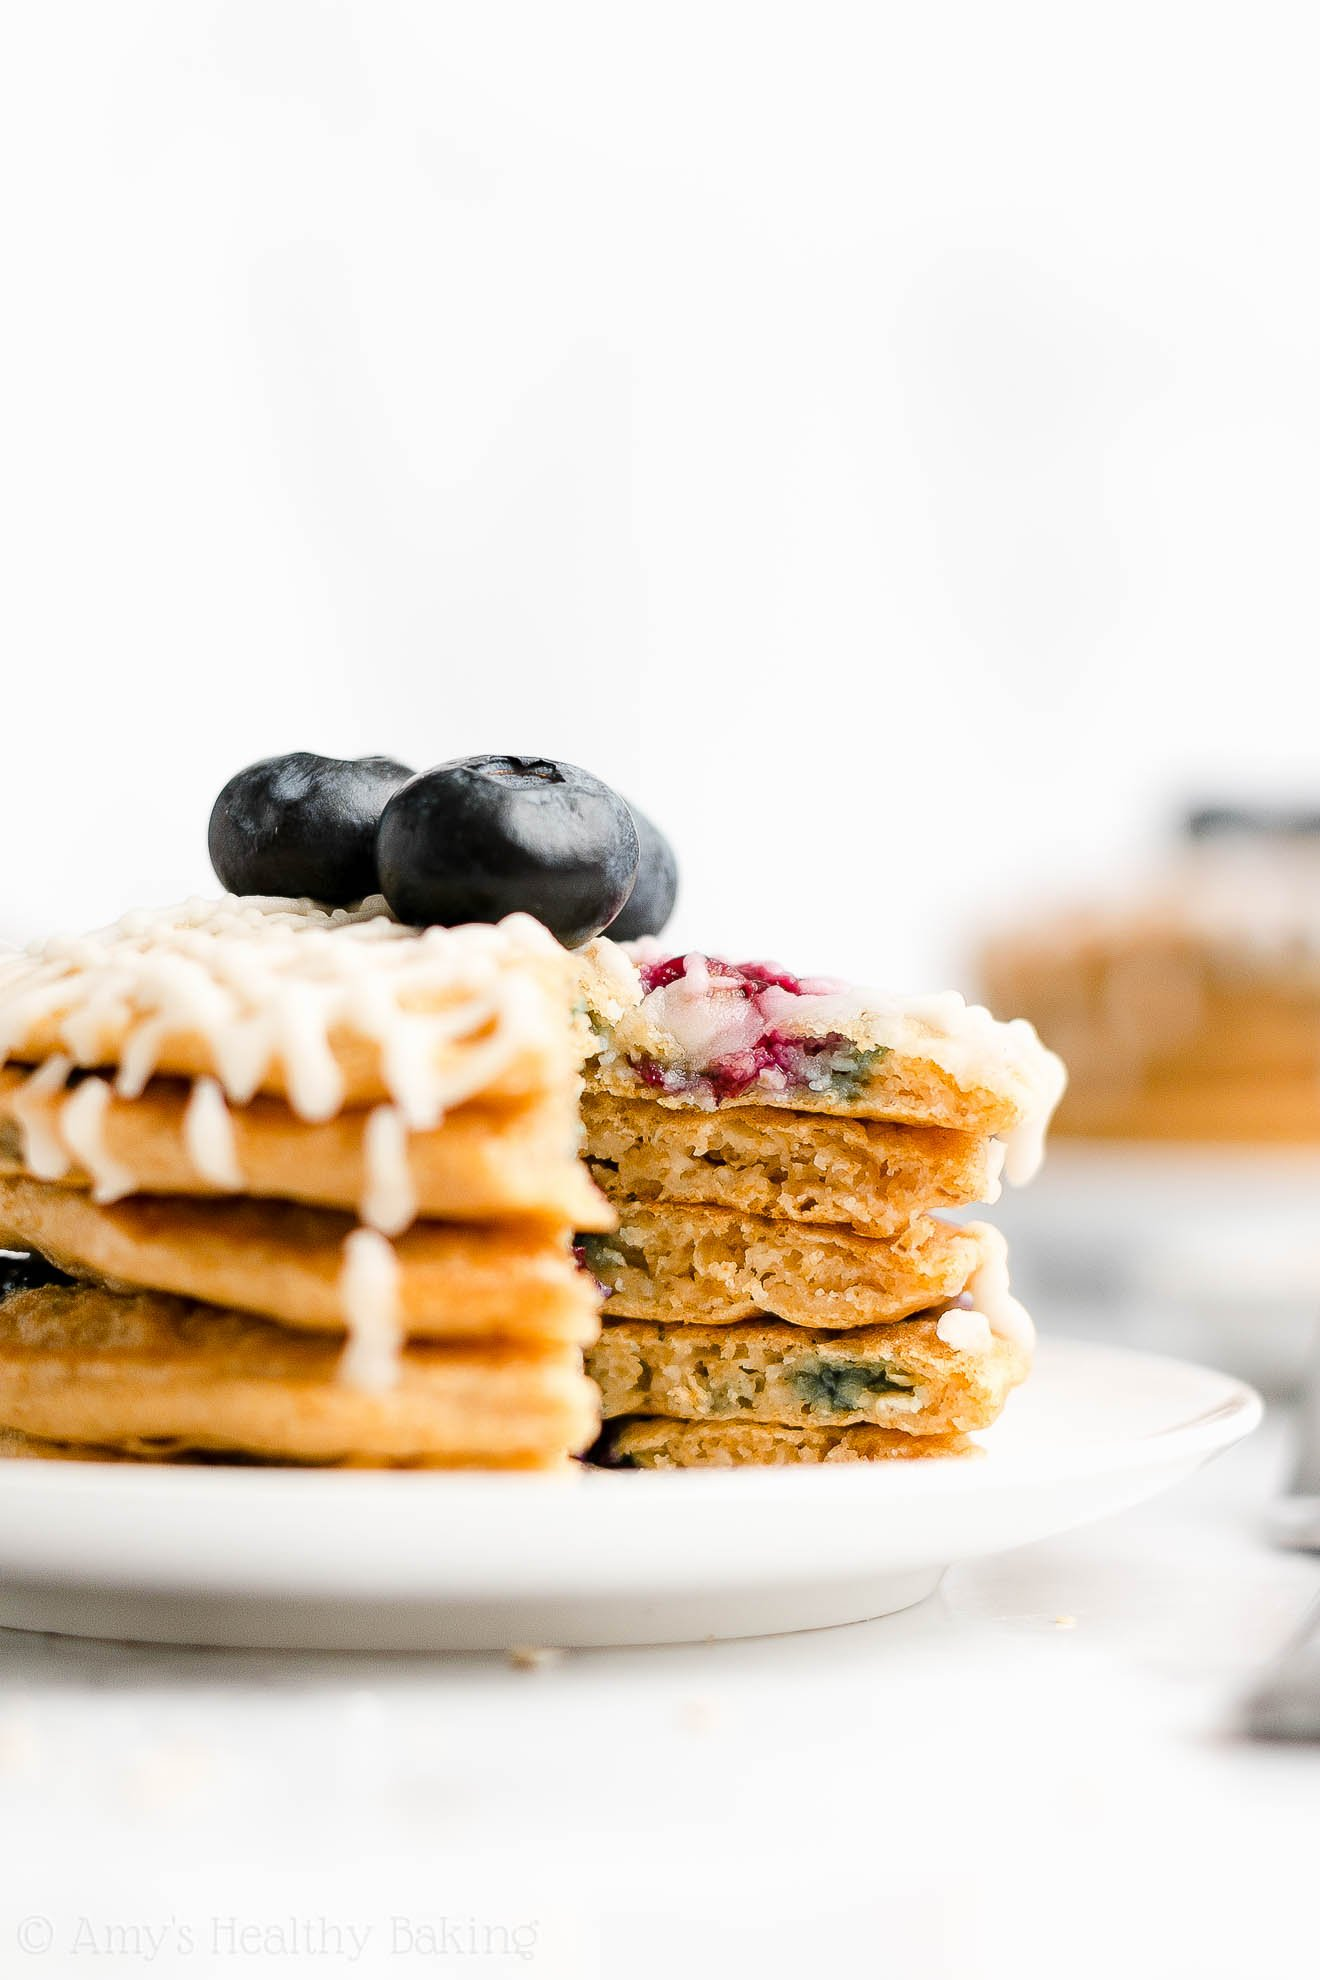 Easy Gluten Free Low Calorie Healthy Fluffy Blueberry Oatmeal Pancakes